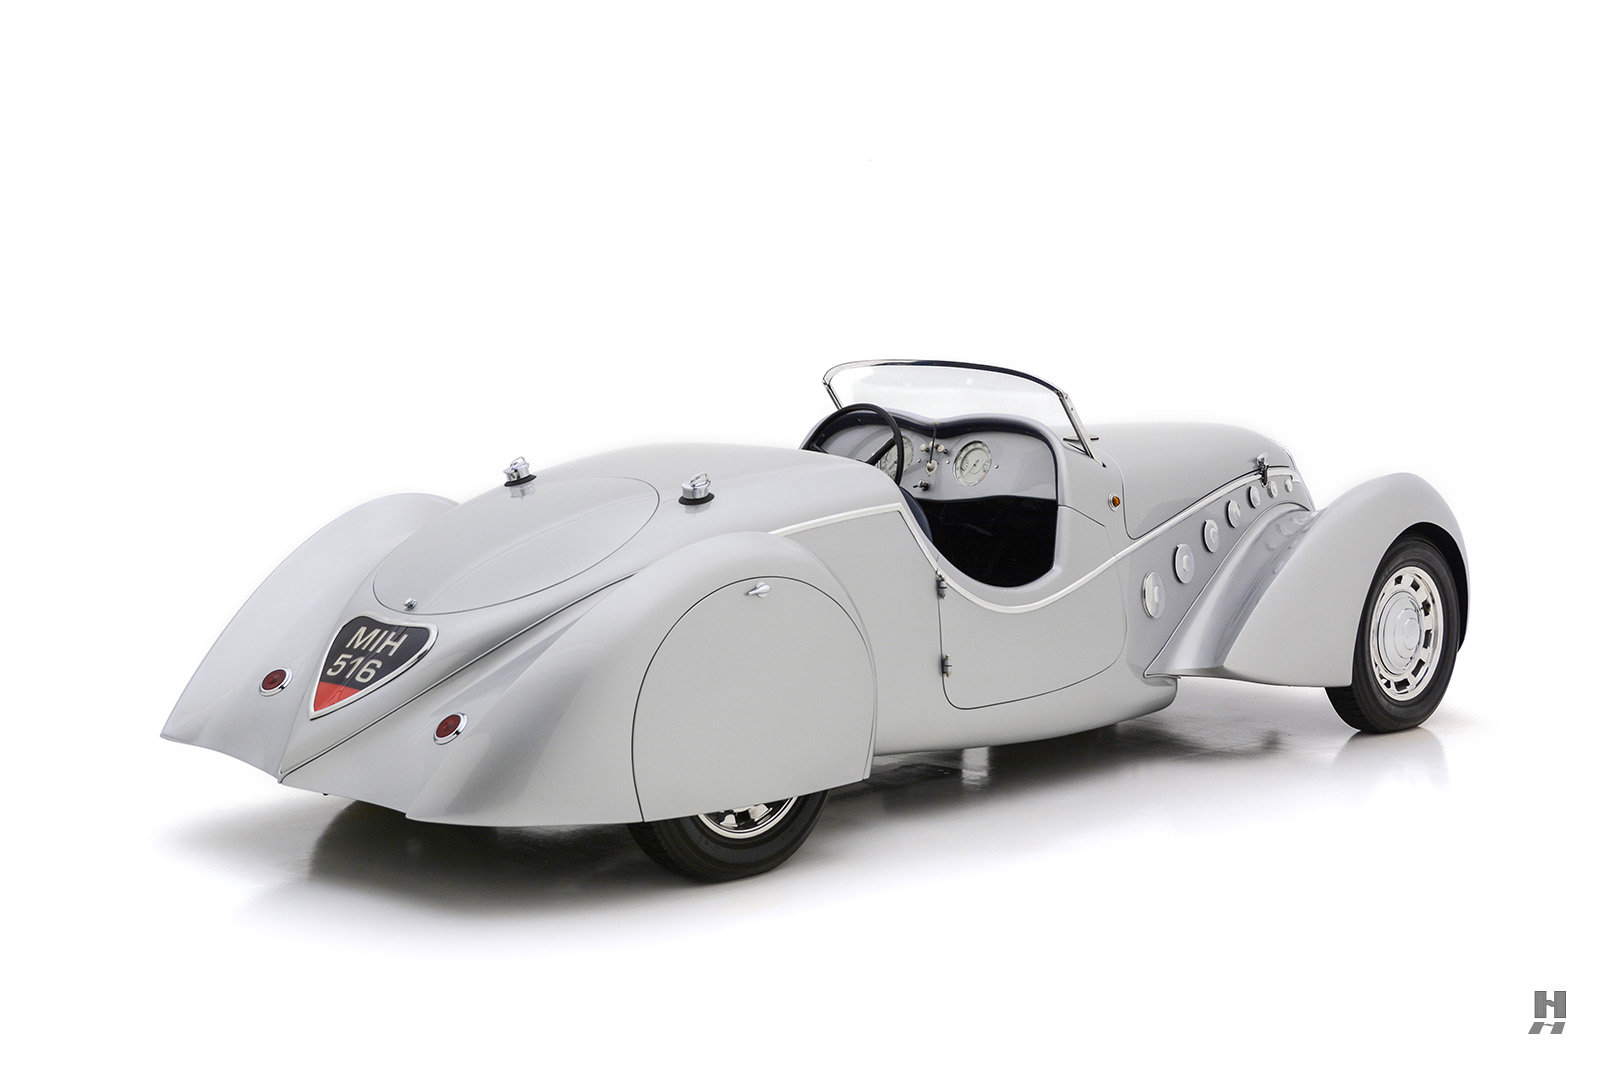 1938 PEUGEOT DARL'MAT For Sale (picture 5 of 6)